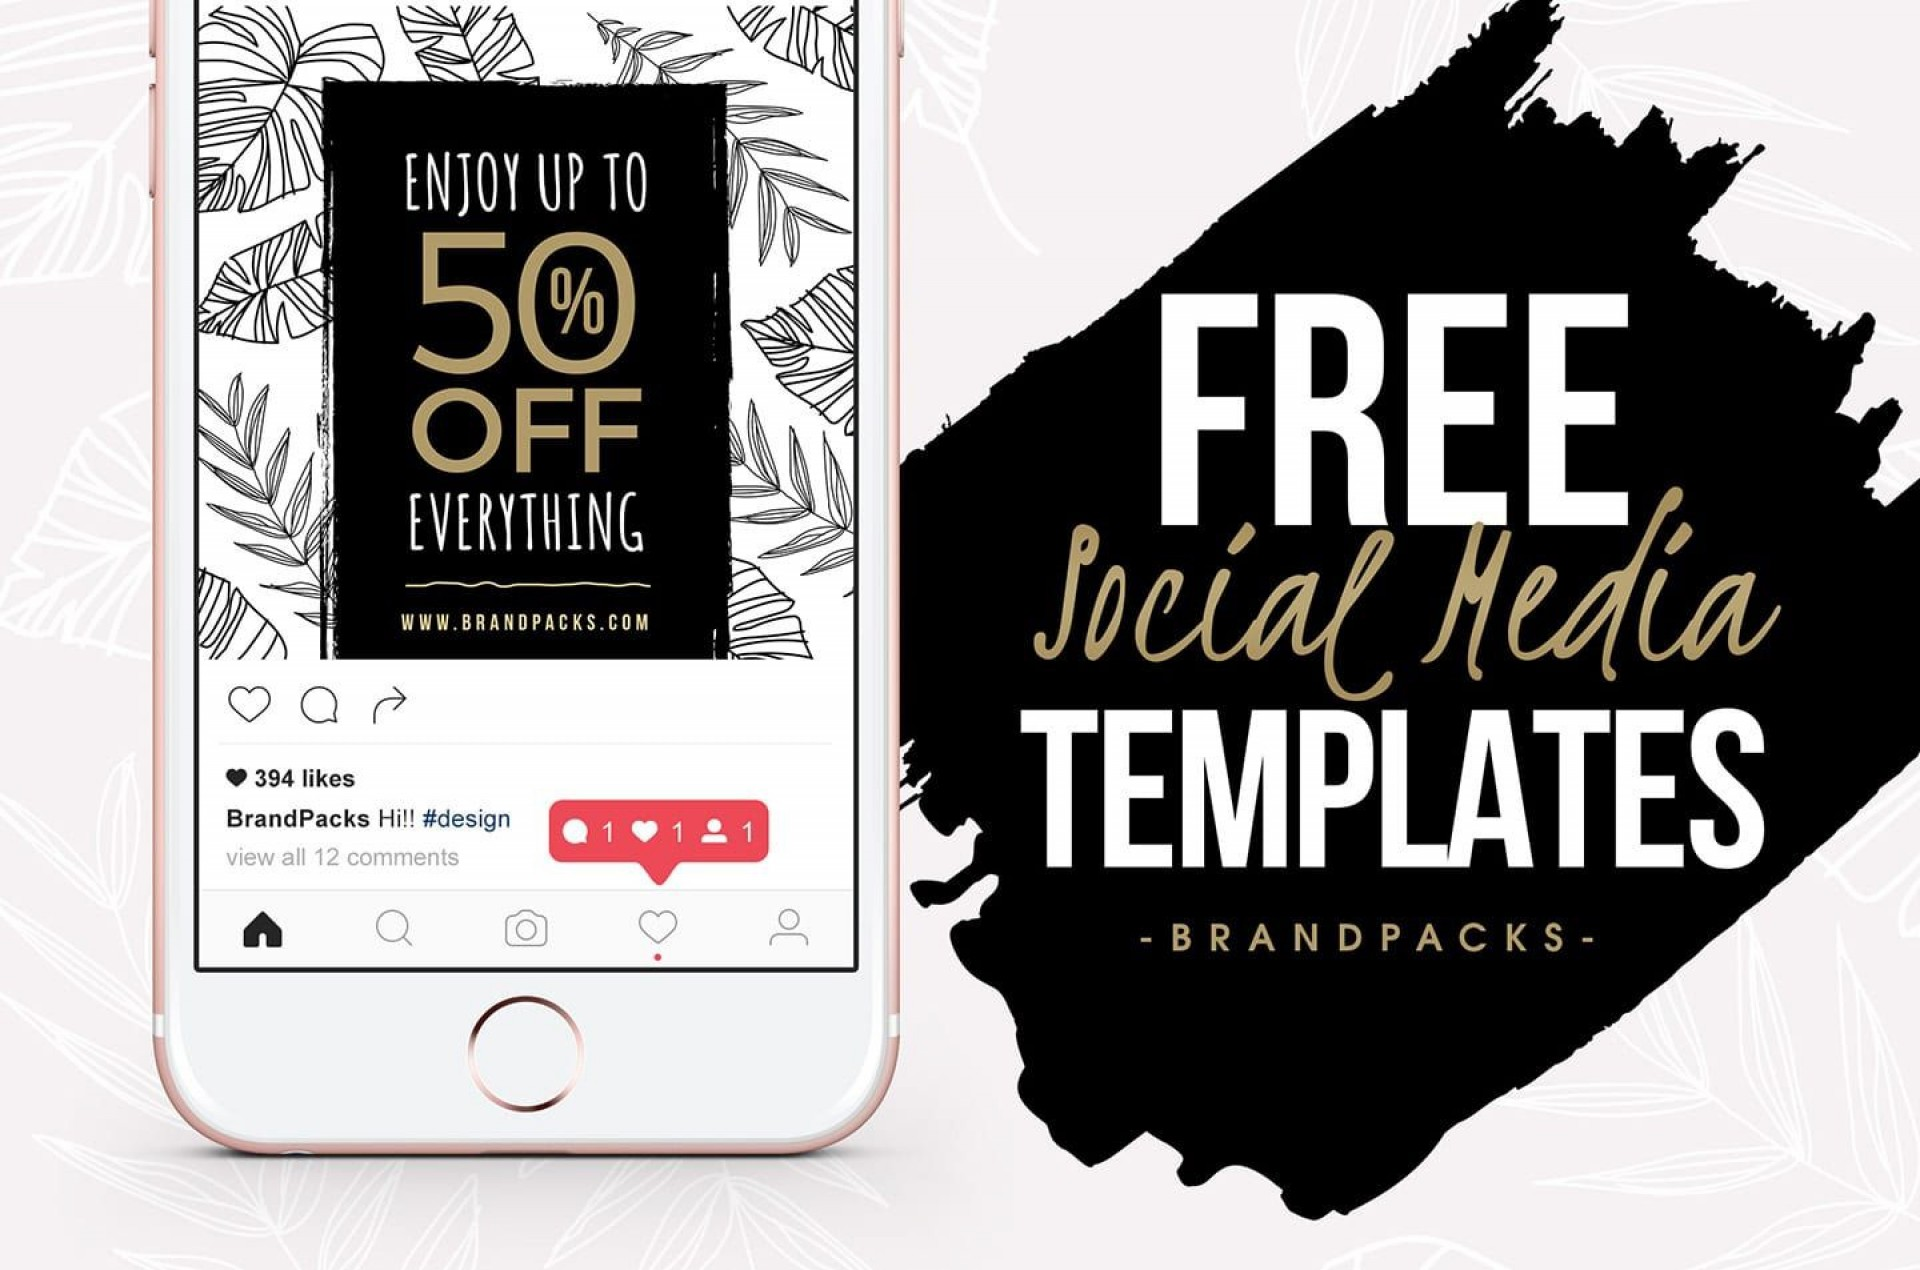 007 Wondrou Free Social Media Template Picture  Templates Website Design Post Download For Powerpoint1920